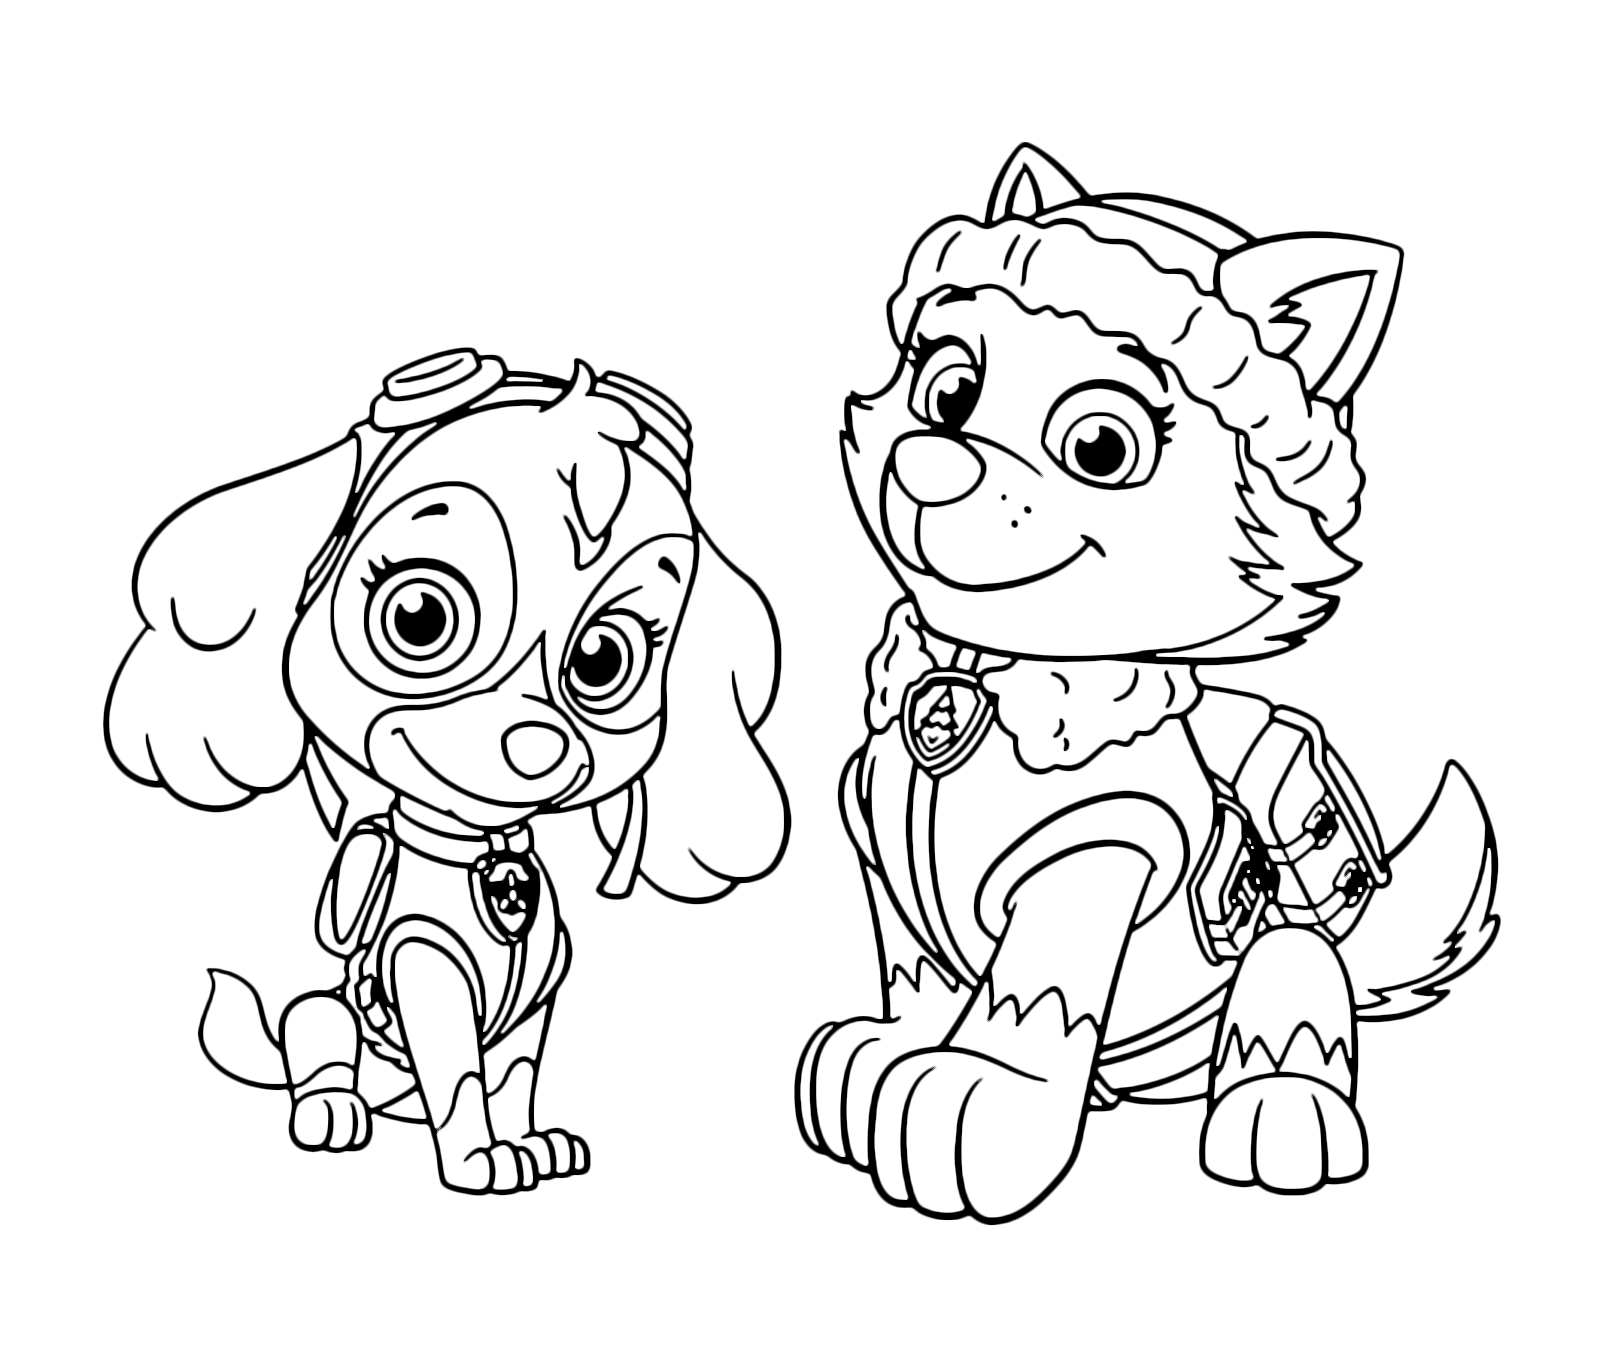 Skye Paw Patrol Coloring Pages : Paw patrol skye and everest together